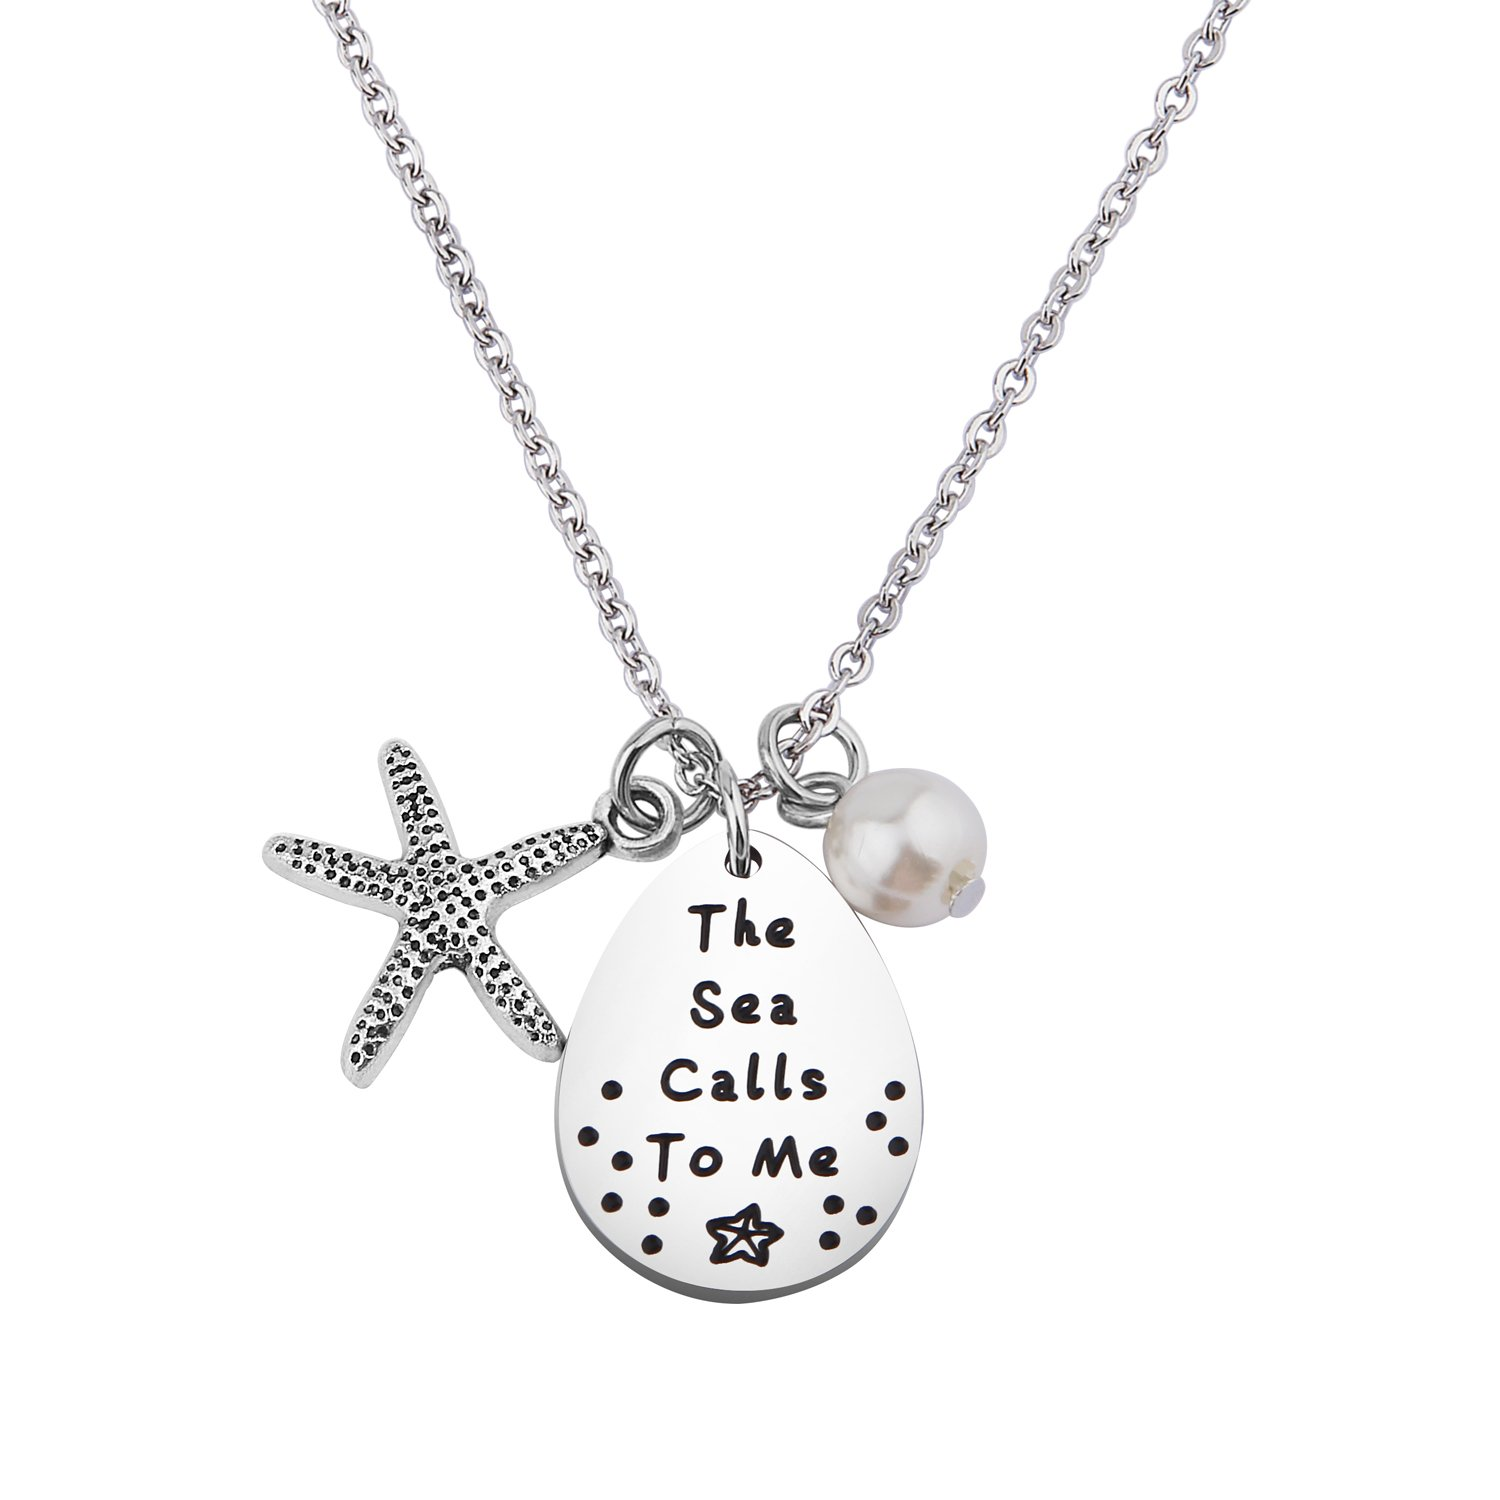 WUSUANED The Sea Calls to Me Starfish Necklace Summer Beach Jewelry Gift for Beach Lover (The sea Calls to me Necklace)